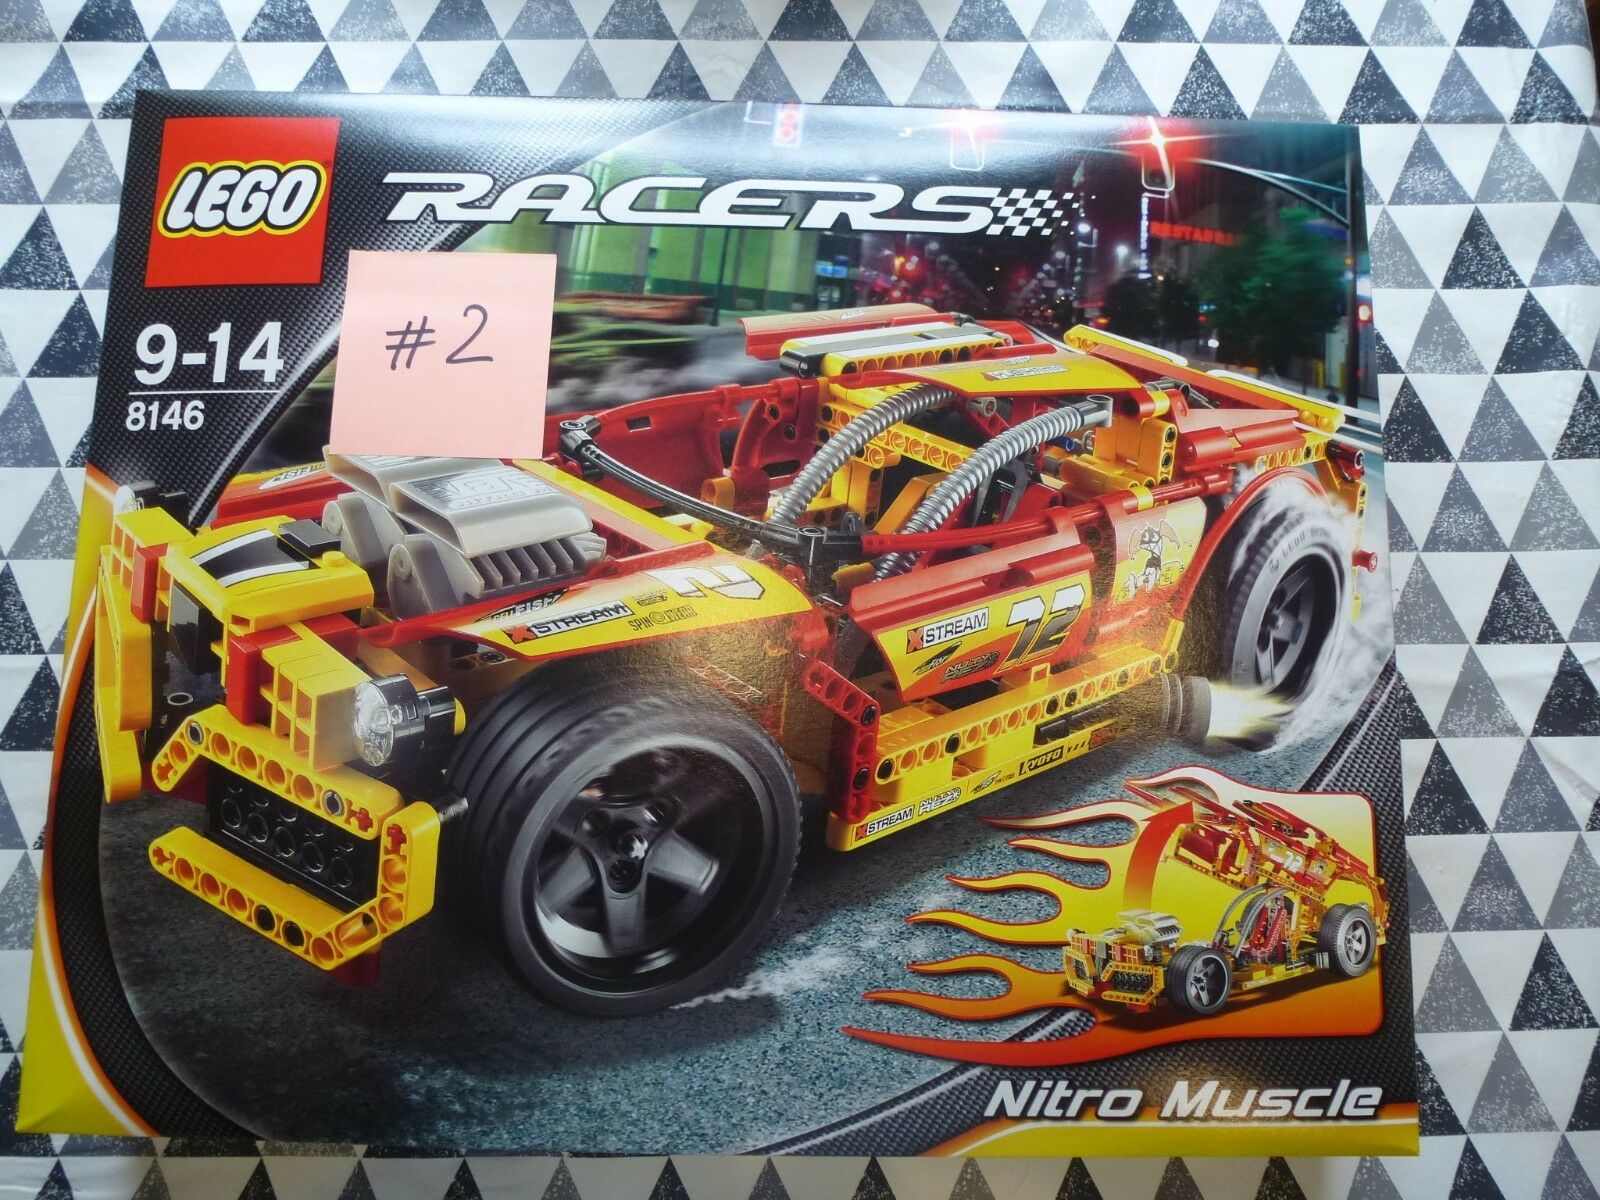 LEGO NEW 8146 Nitro Muscle Racer 2007 Unique Rear Tyres 598 pieces Technic